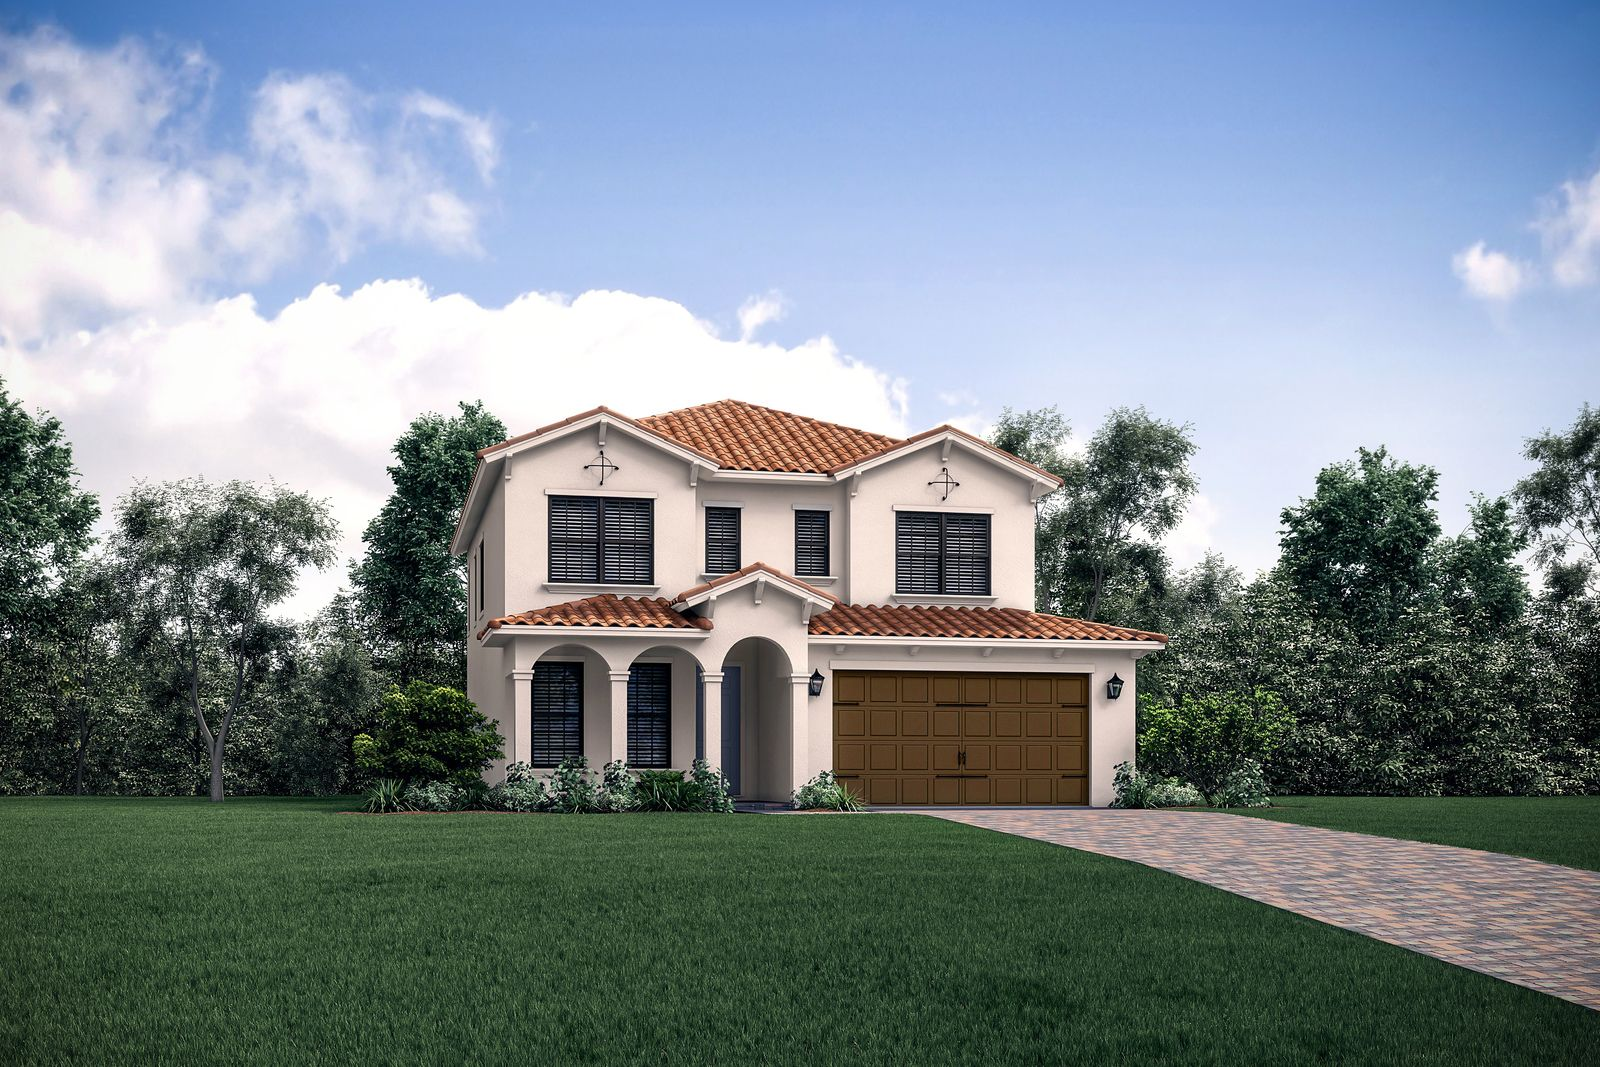 Single Family للـ Sale في Rosalind 913 Serling Pine Pl Wellington, Florida 33470 United States